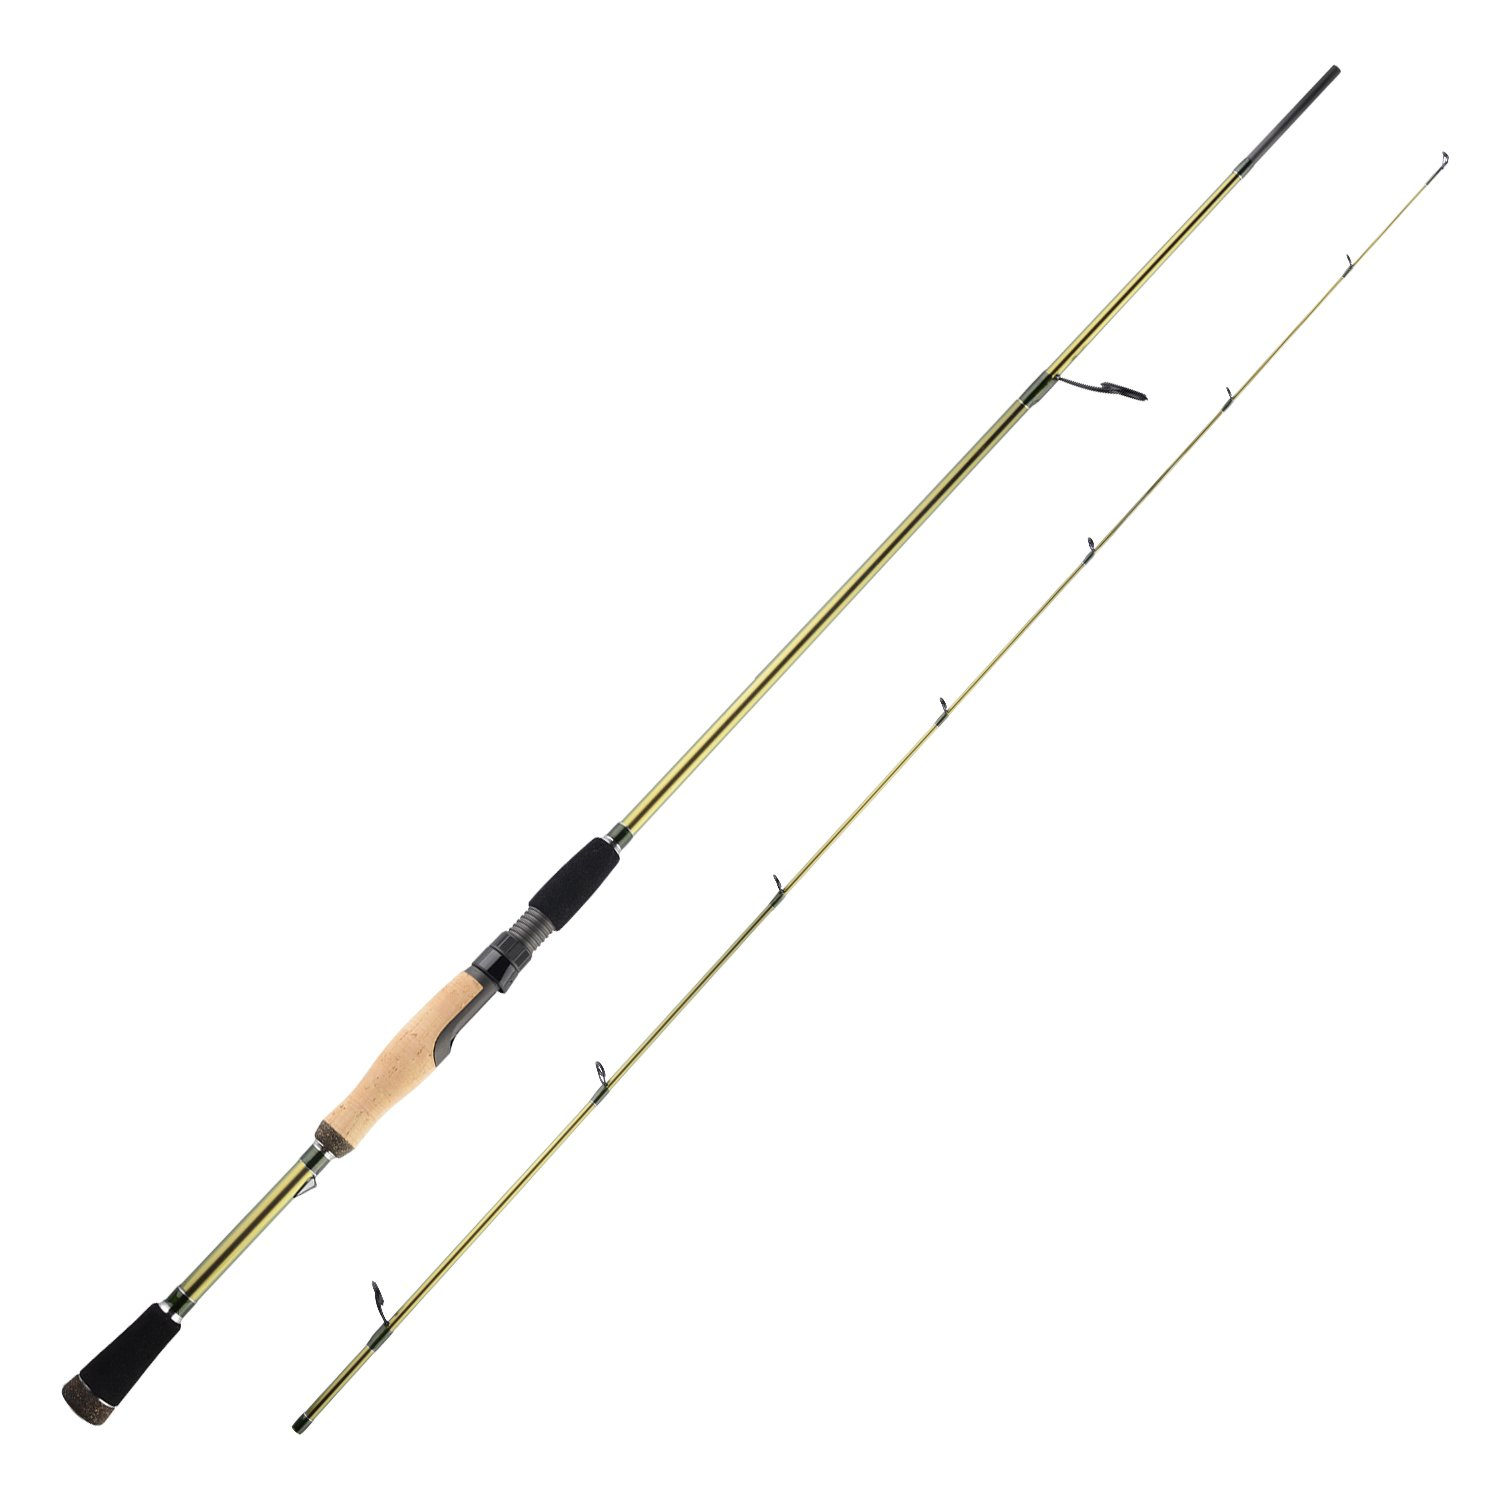 KastKing WideEye Walleye Fishing Rods, Technique Specific Walleye Rod, Casting Spinning Fishing Rods, Toray Carbon IM9 Blanks, Fuji Guides Reel Seats, 3A Cork Handle, EVA Foregrip Fighting Butt